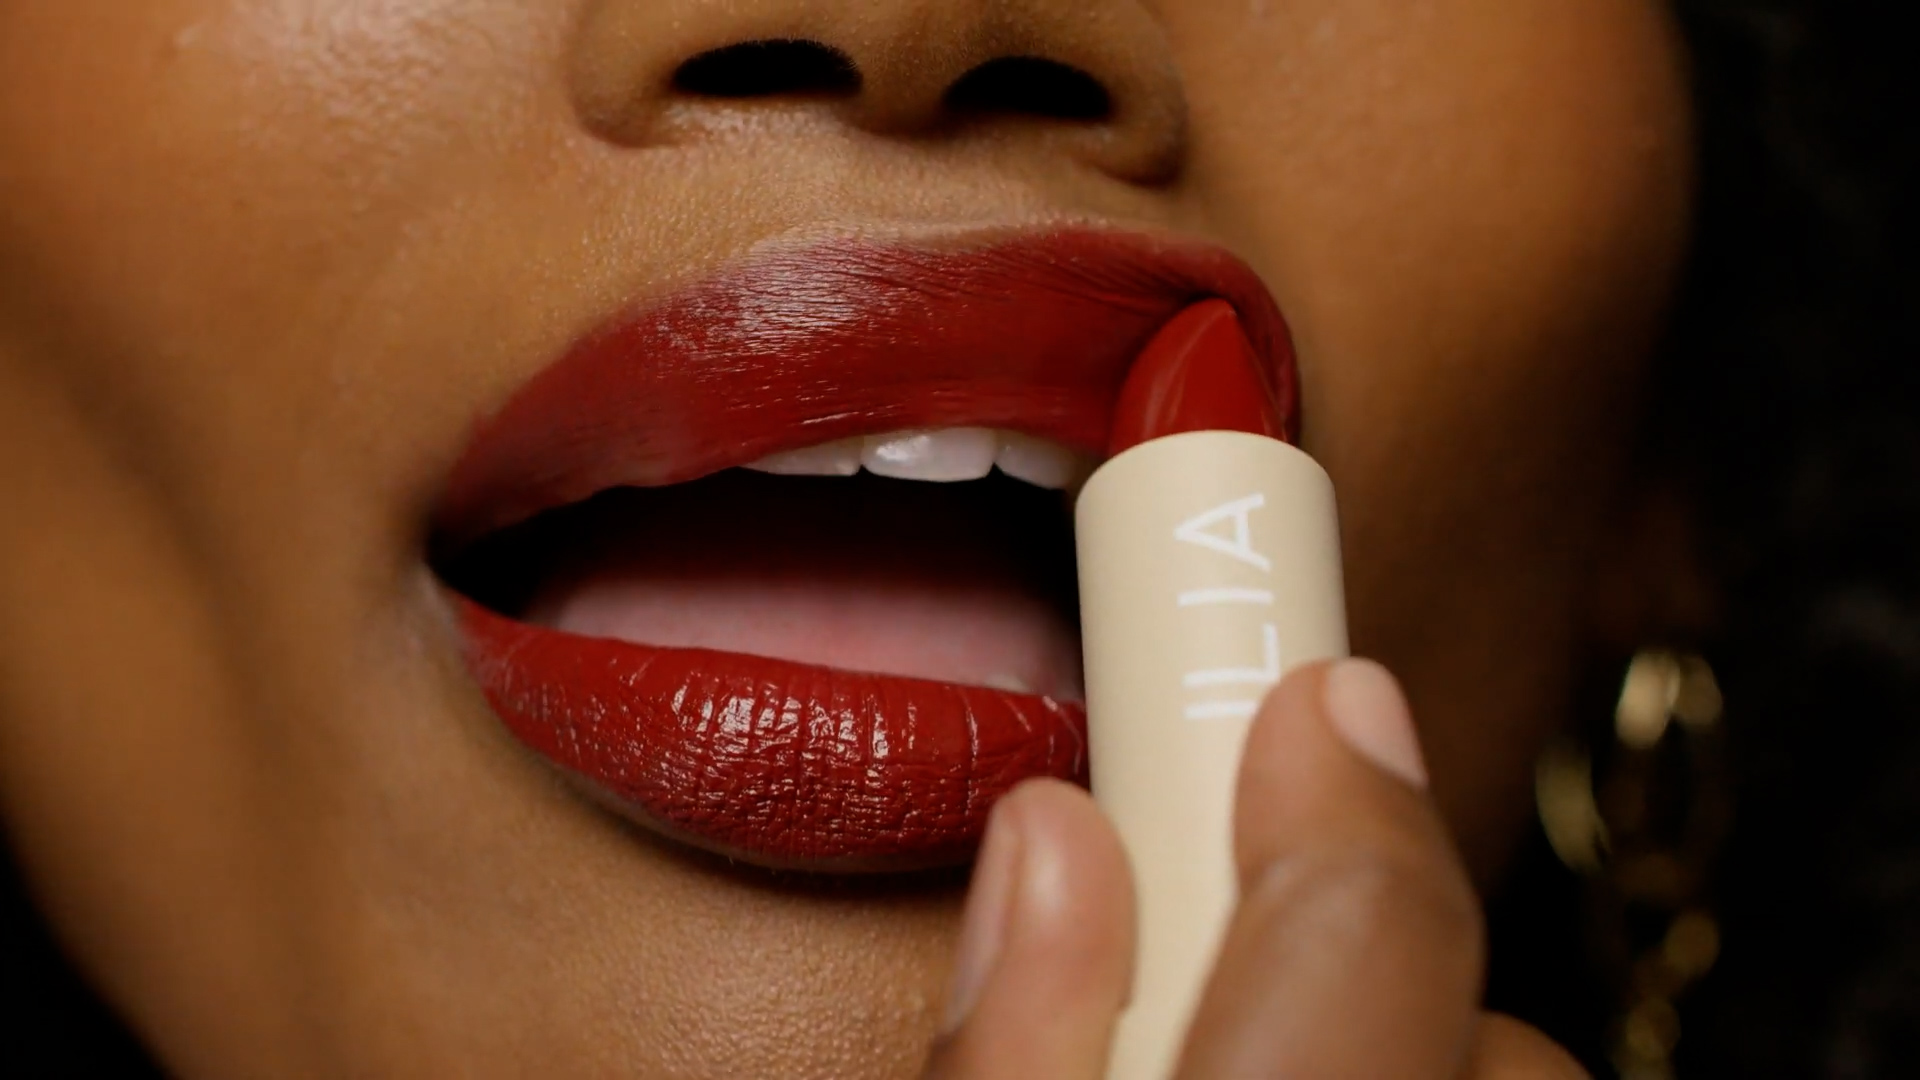 news.yahoo.com: Protect and revive your skin rather than just covering it up with clean beauty products from Ilia